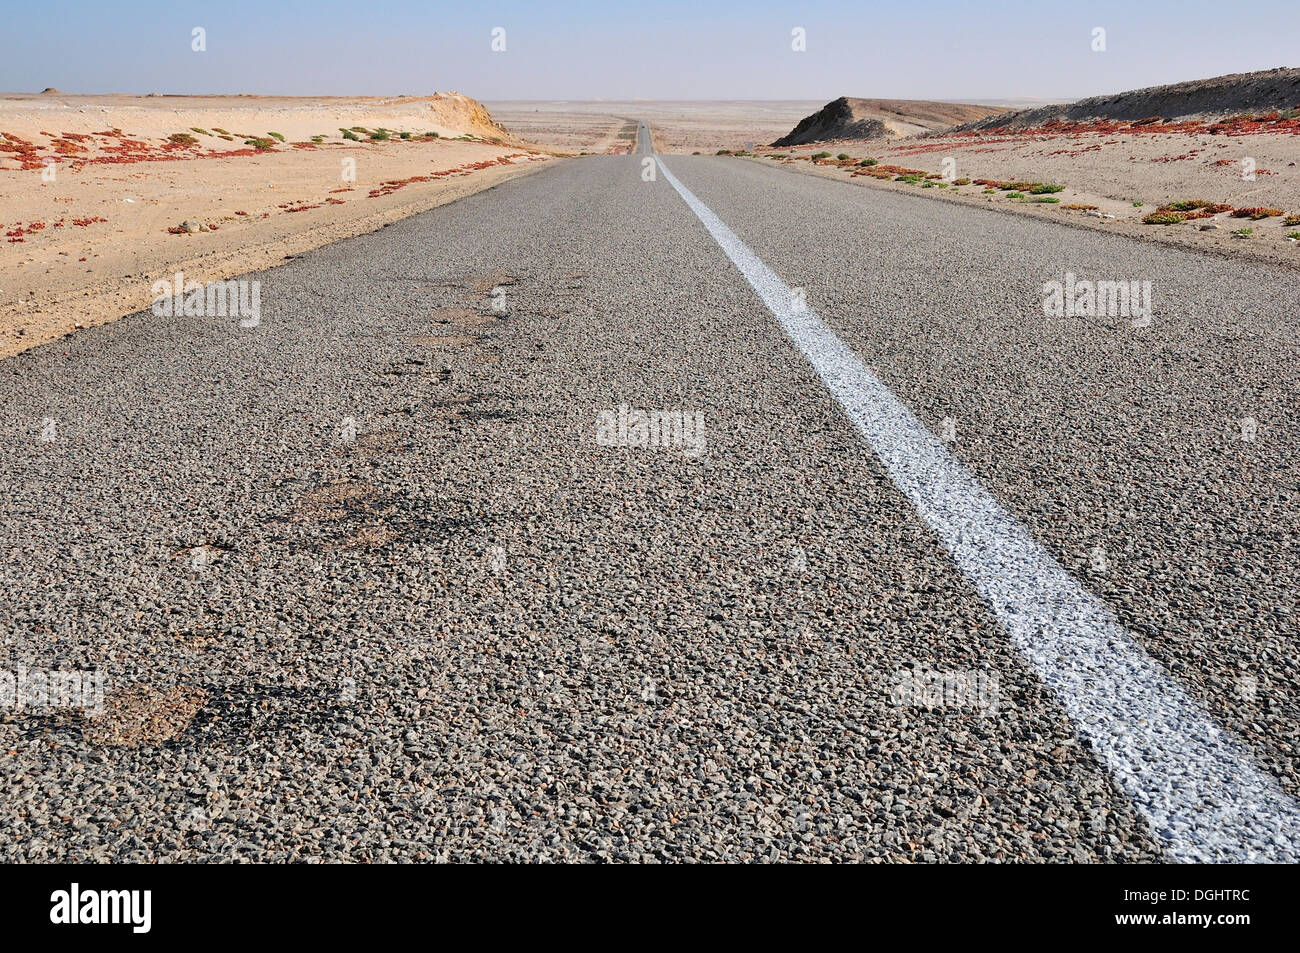 Paved country road in Western Sahara, towards Mauritania, Oued Ed-Dahab-Lagouira region, Morocco - Stock Image